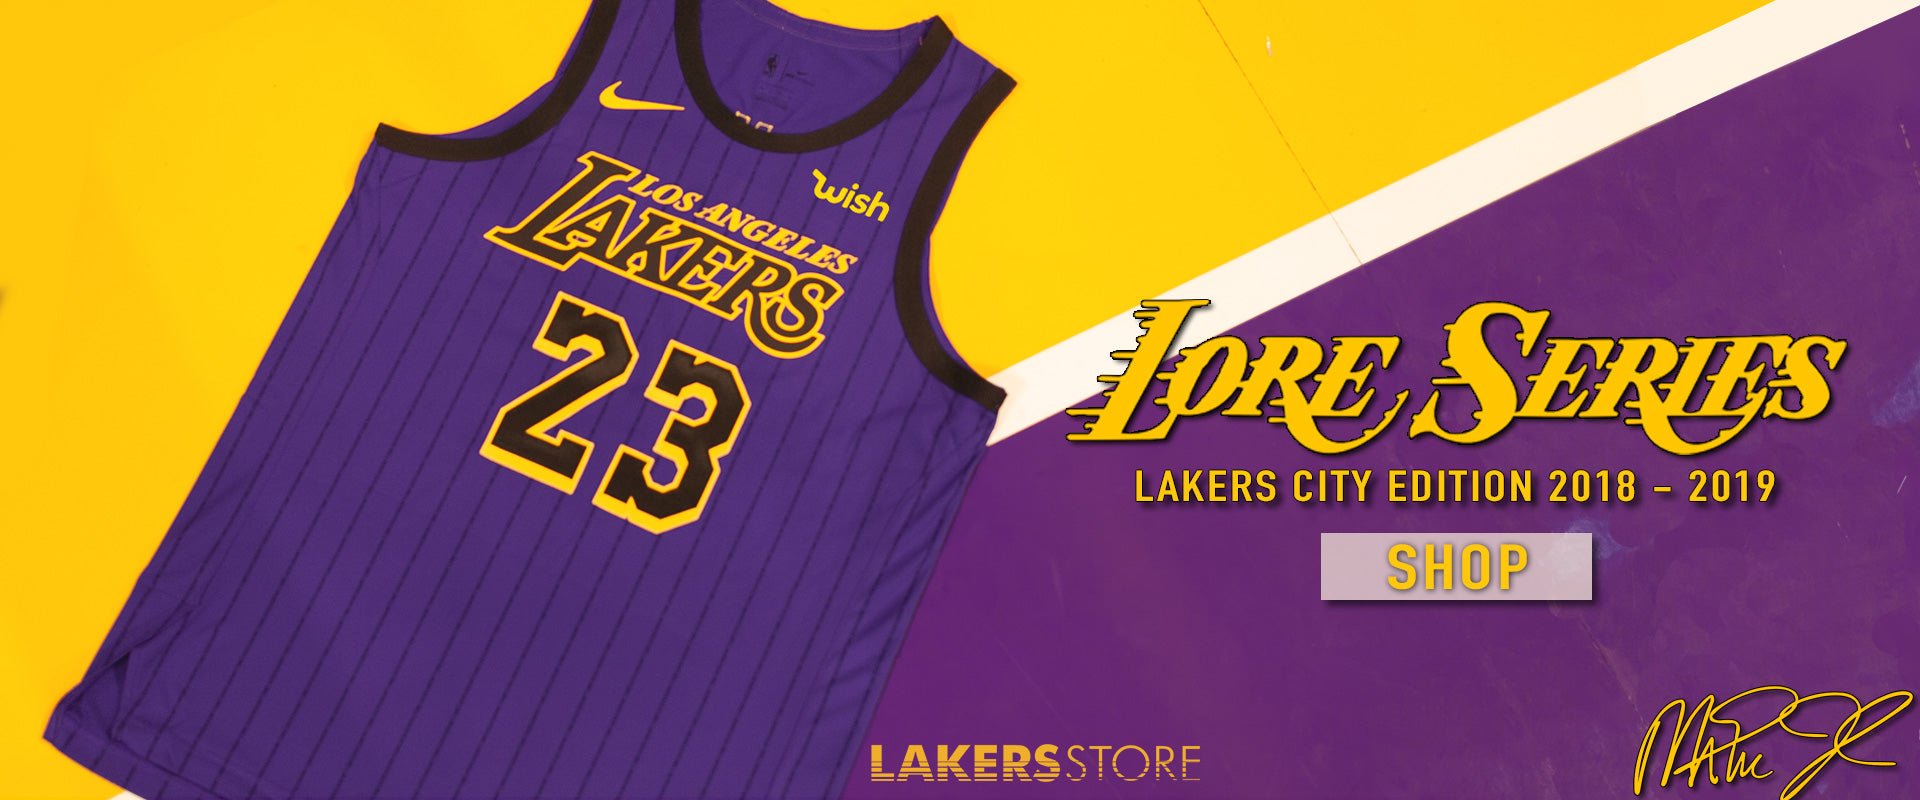 City Edition Collection – Lakers Store